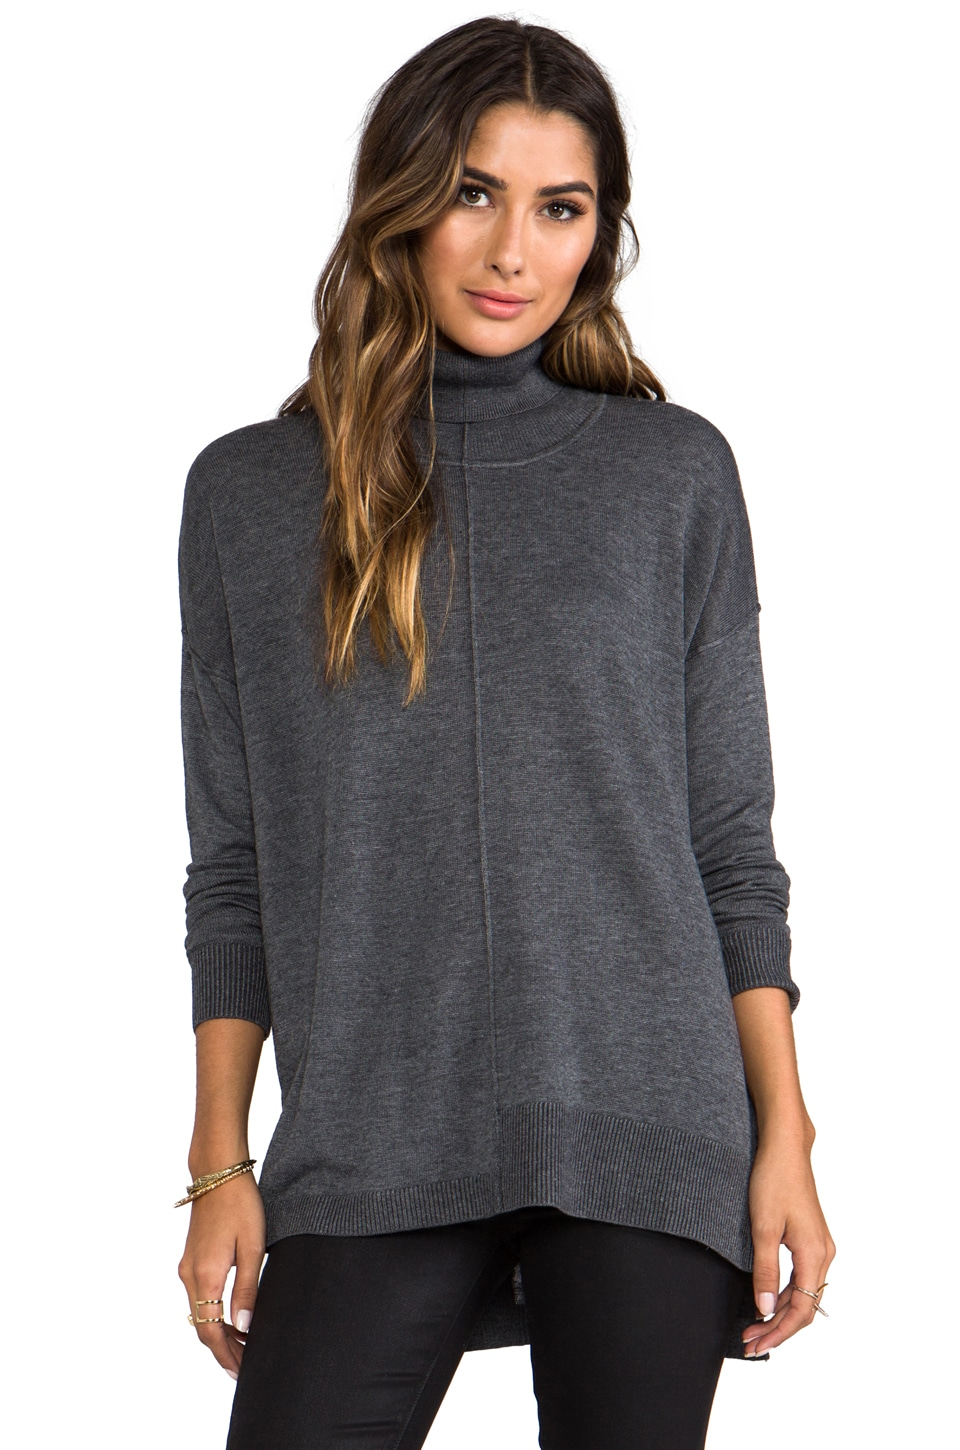 Feel the Piece Turtle Neck Sweater in Charcoal Grey